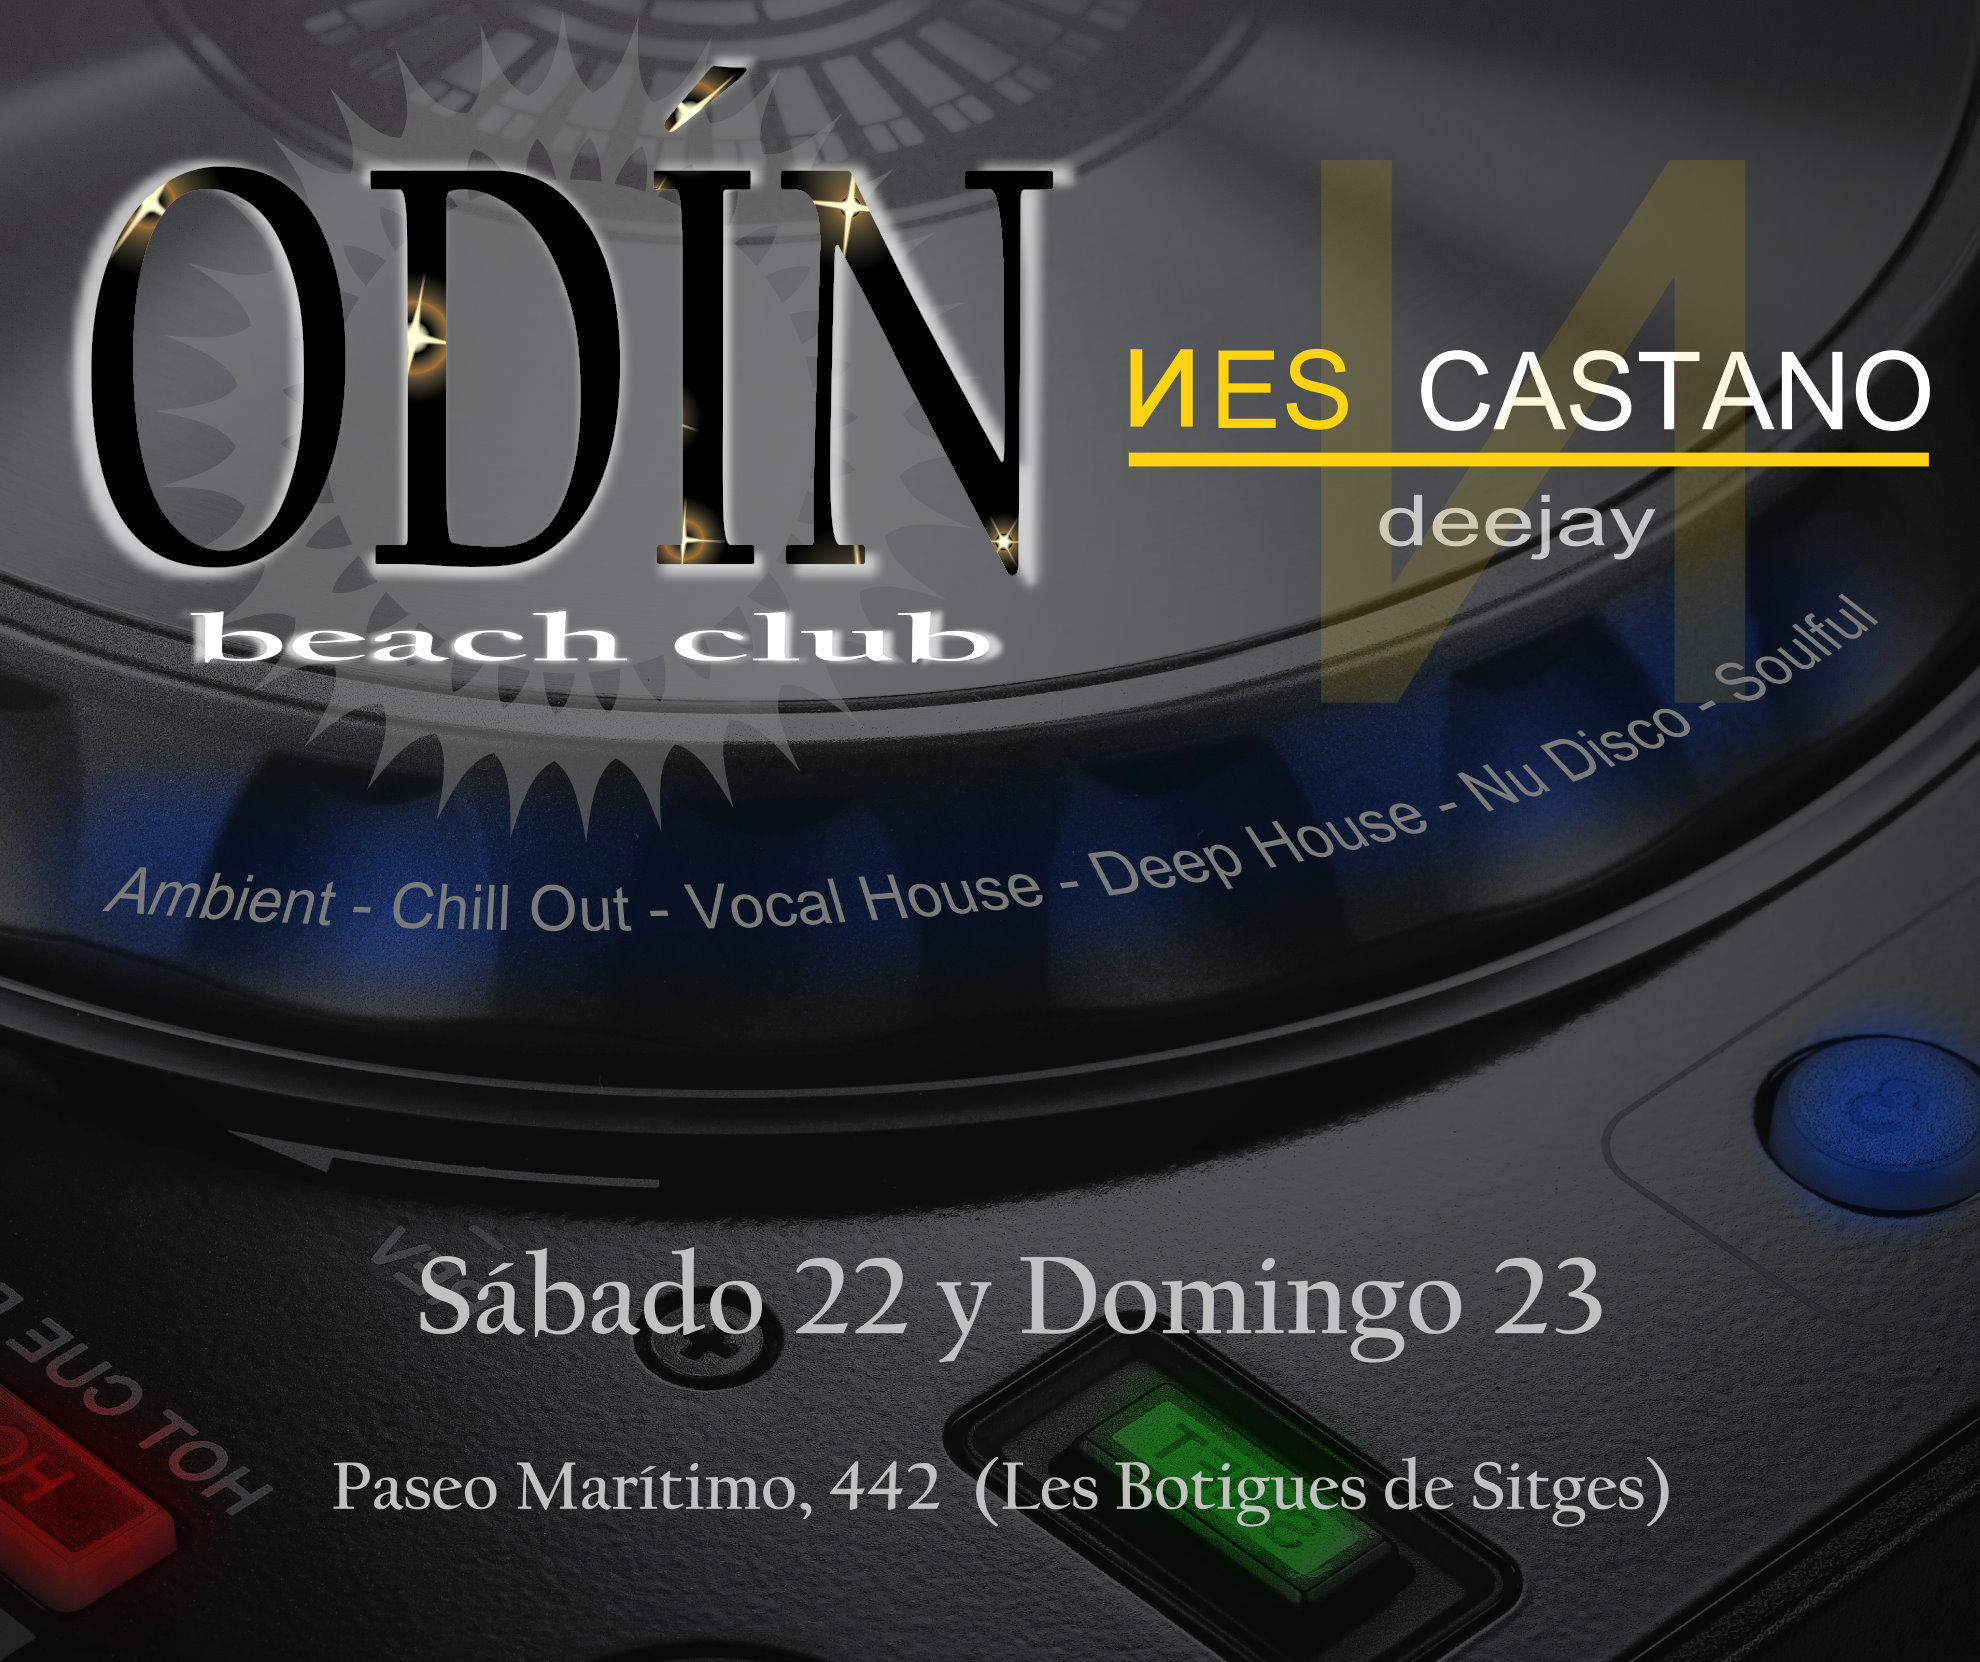 odin beach club promo II